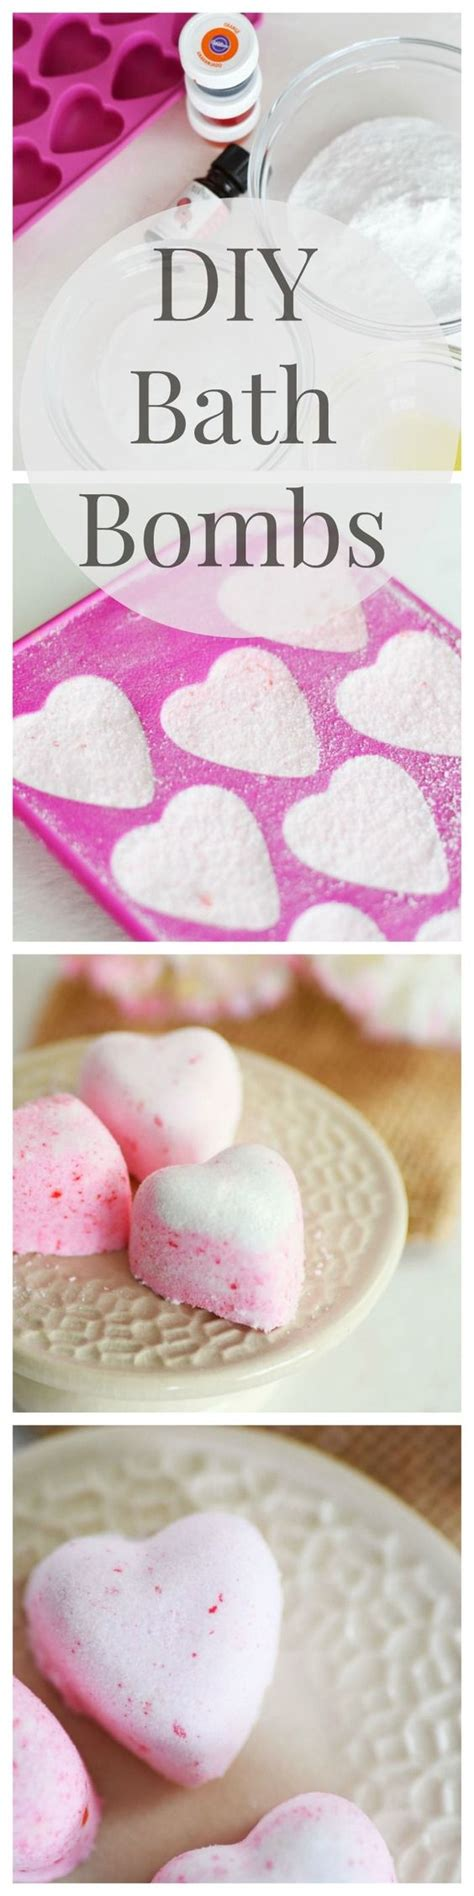 diy bath bombs without citric acid or baking soda diy bath bomb fizzies made with baking soda essential